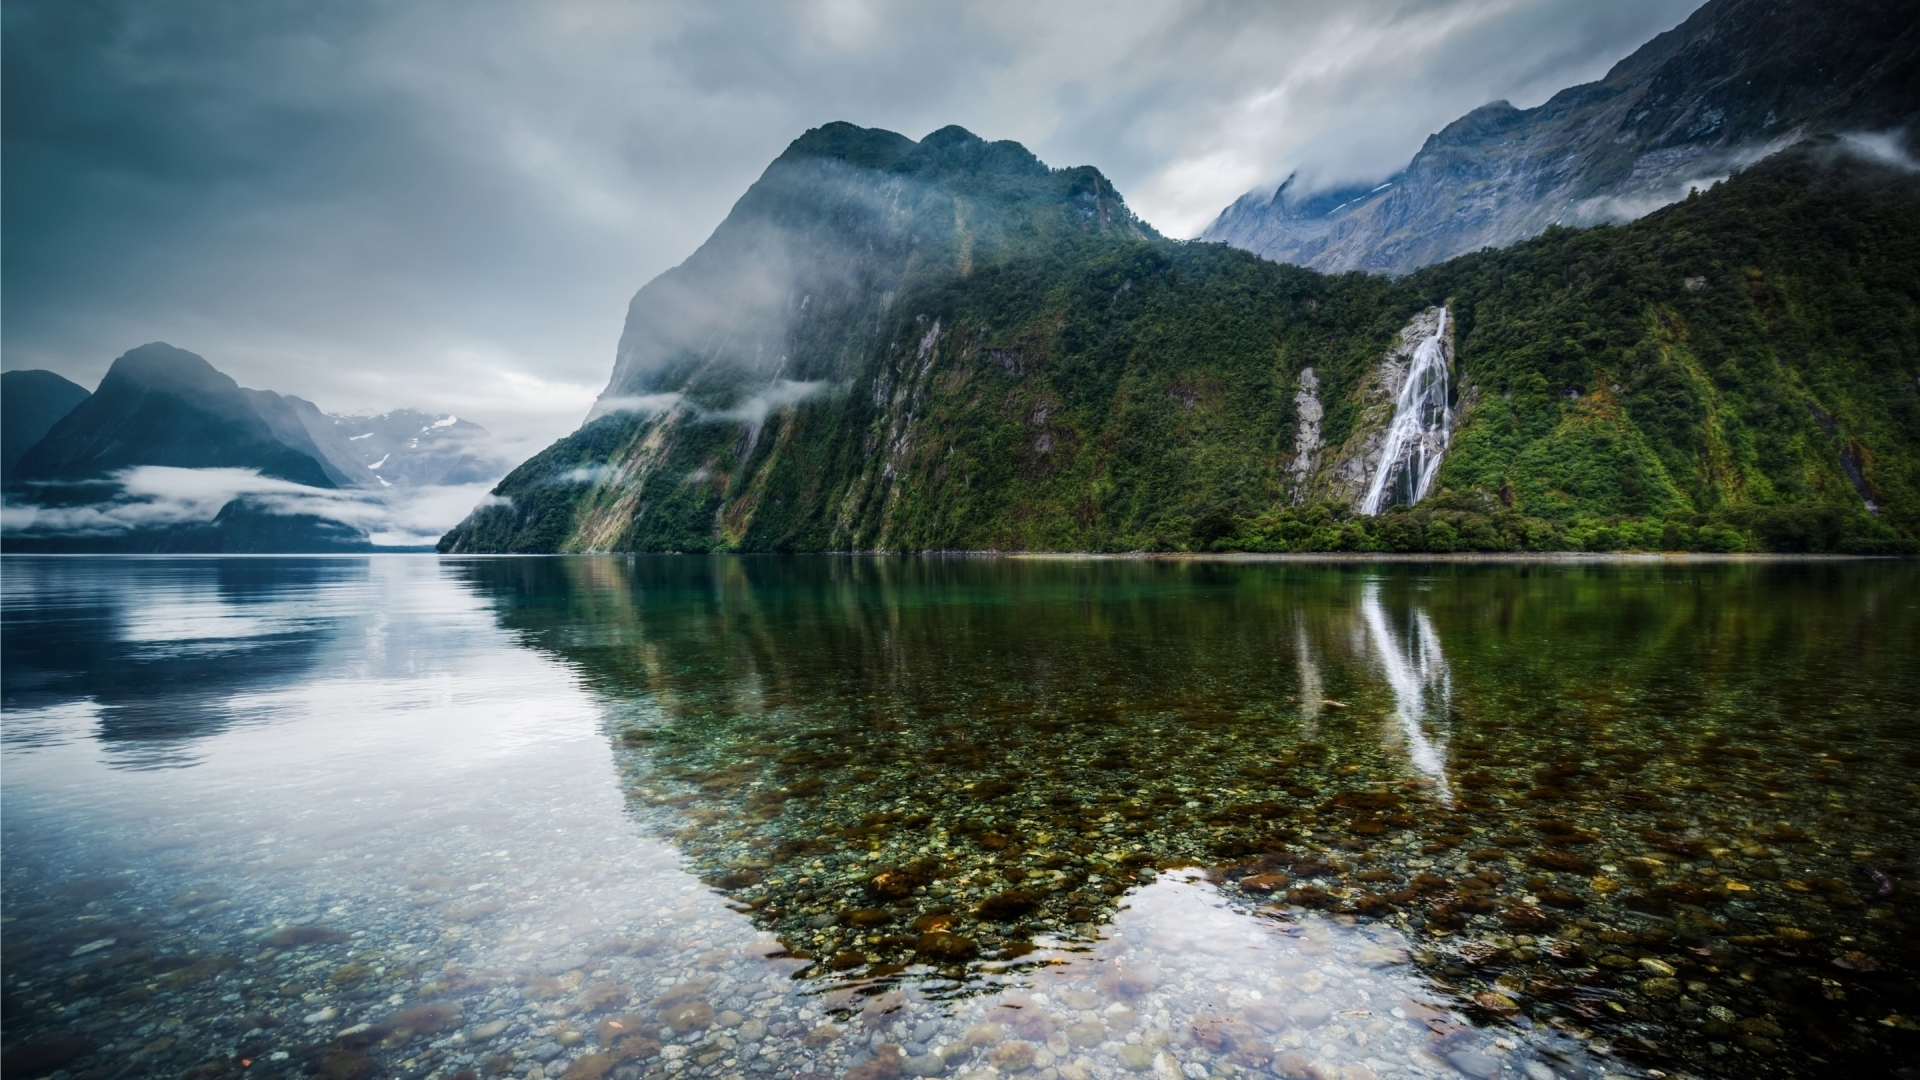 40 Full Hd New Zealand Wallpapers For Free Download The Land Of